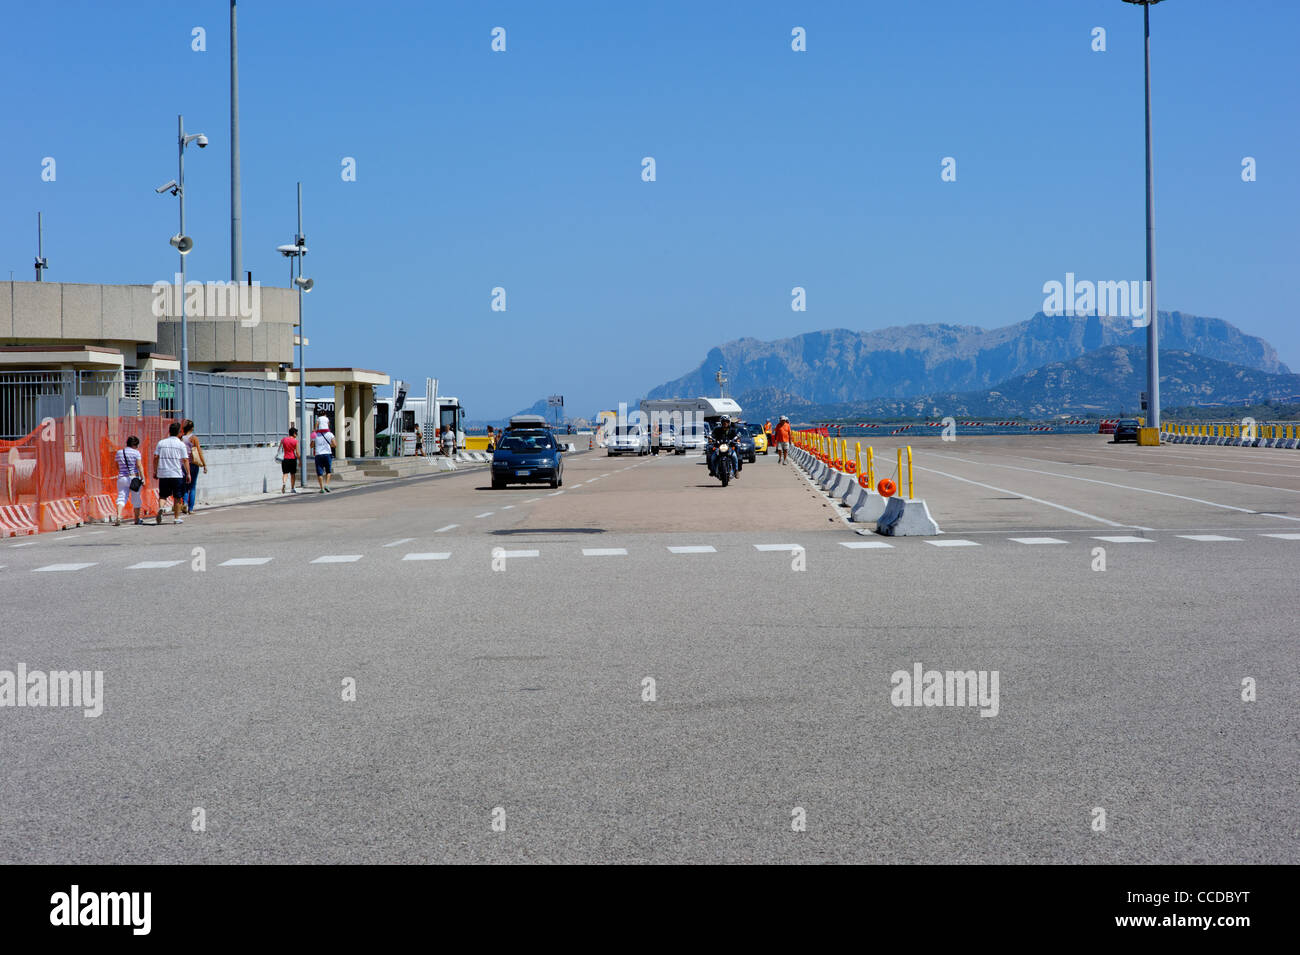 Ship deck for helicopter, Olbia, Sardinia, Italy - Stock Image